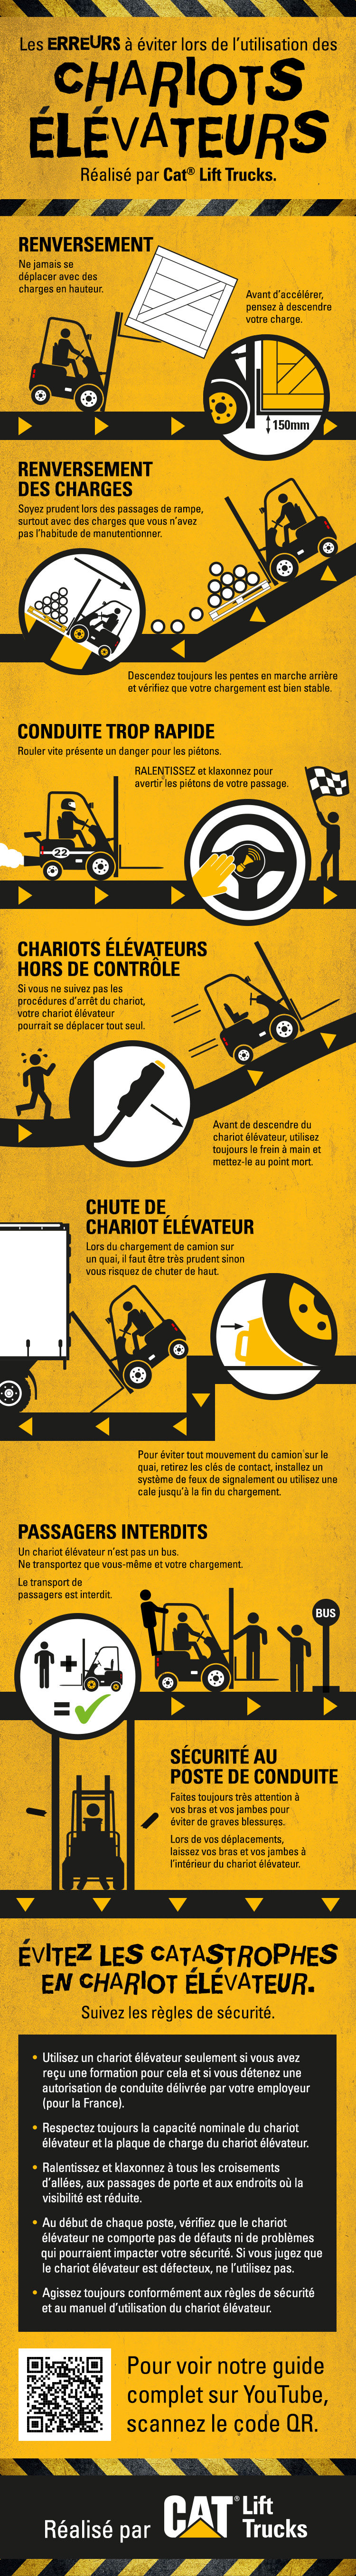 Lift-Truck-Mistakes_online-infographic_1_FR